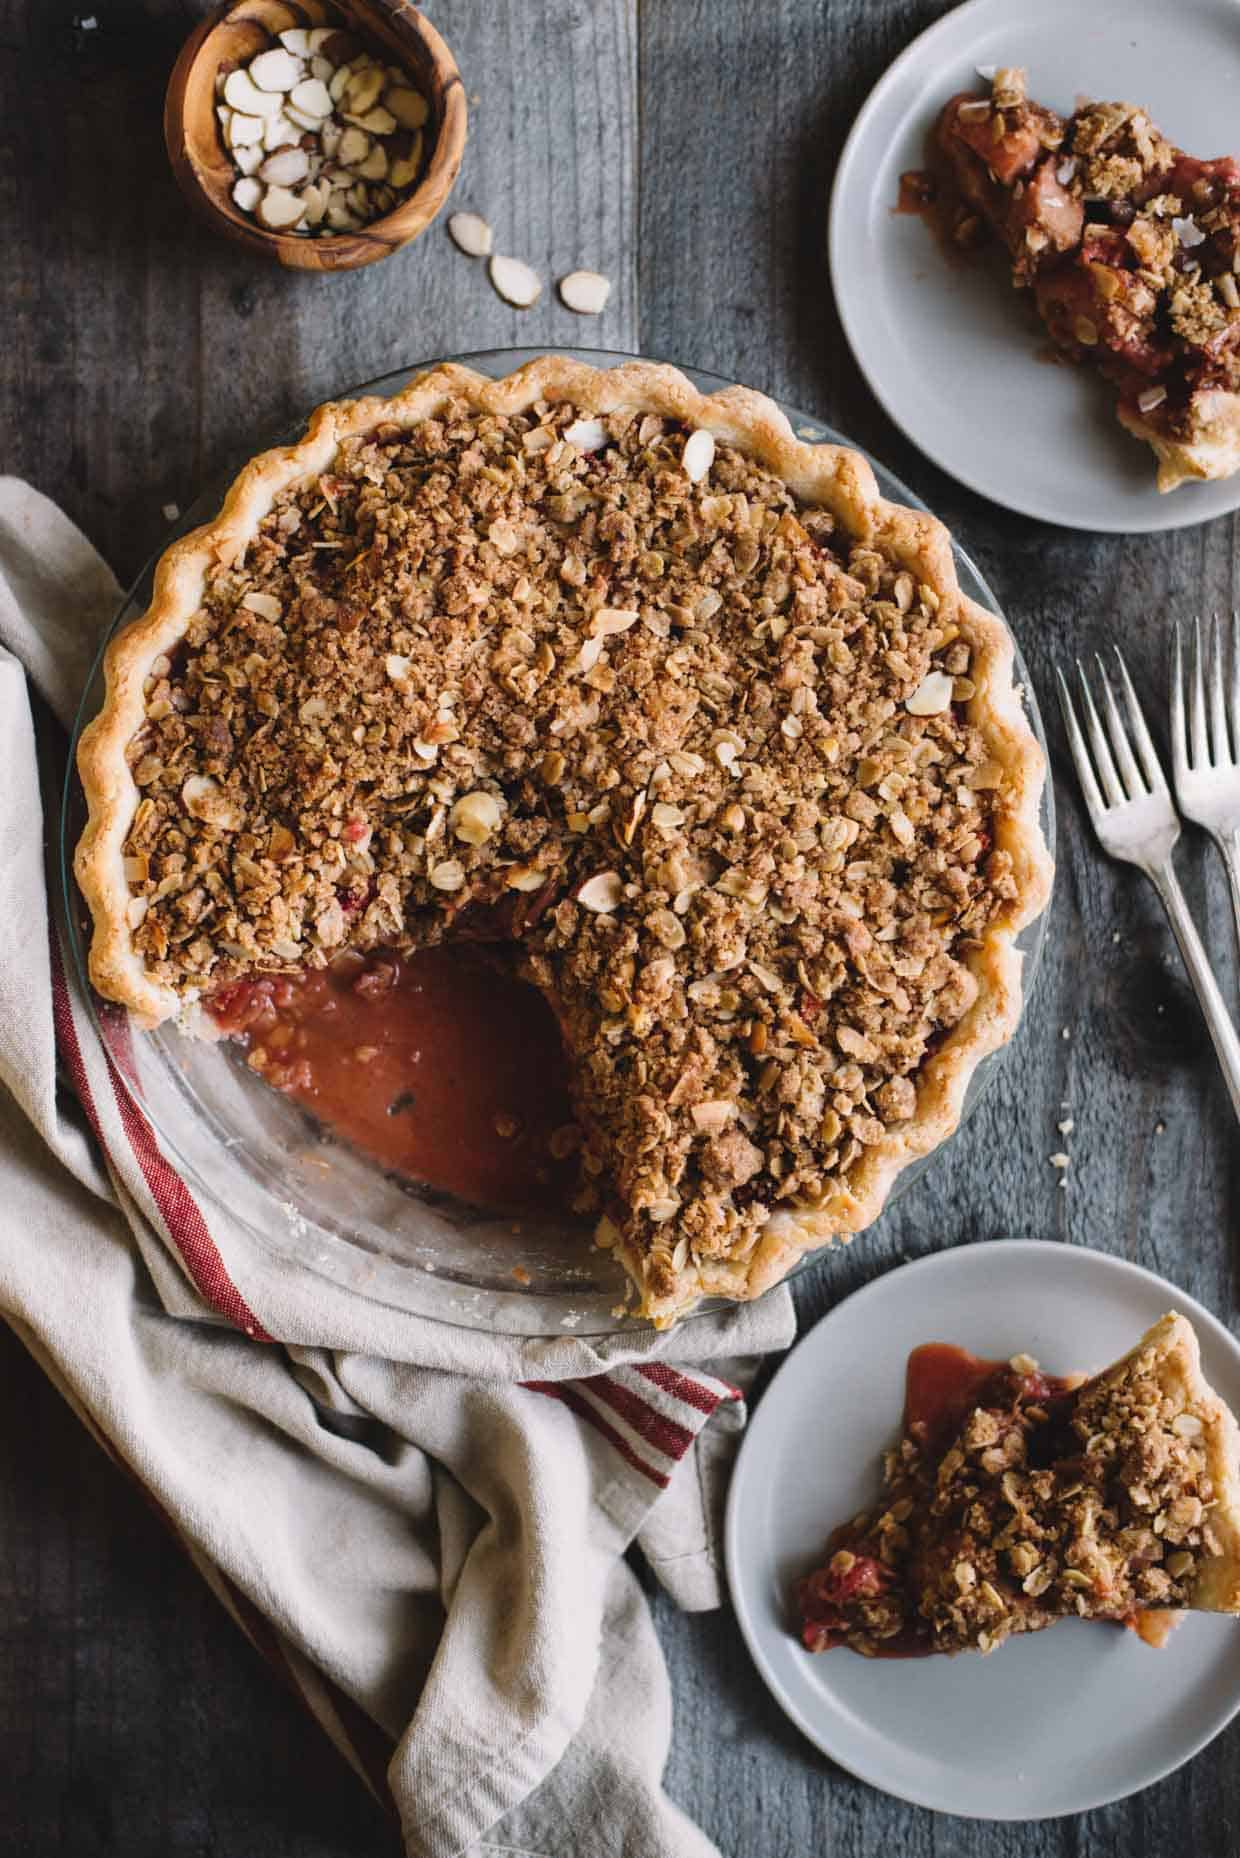 Gluten-Free Strawberry Rhubarb Pie with Crumb Topping - delicious spring pie by @healthynibs